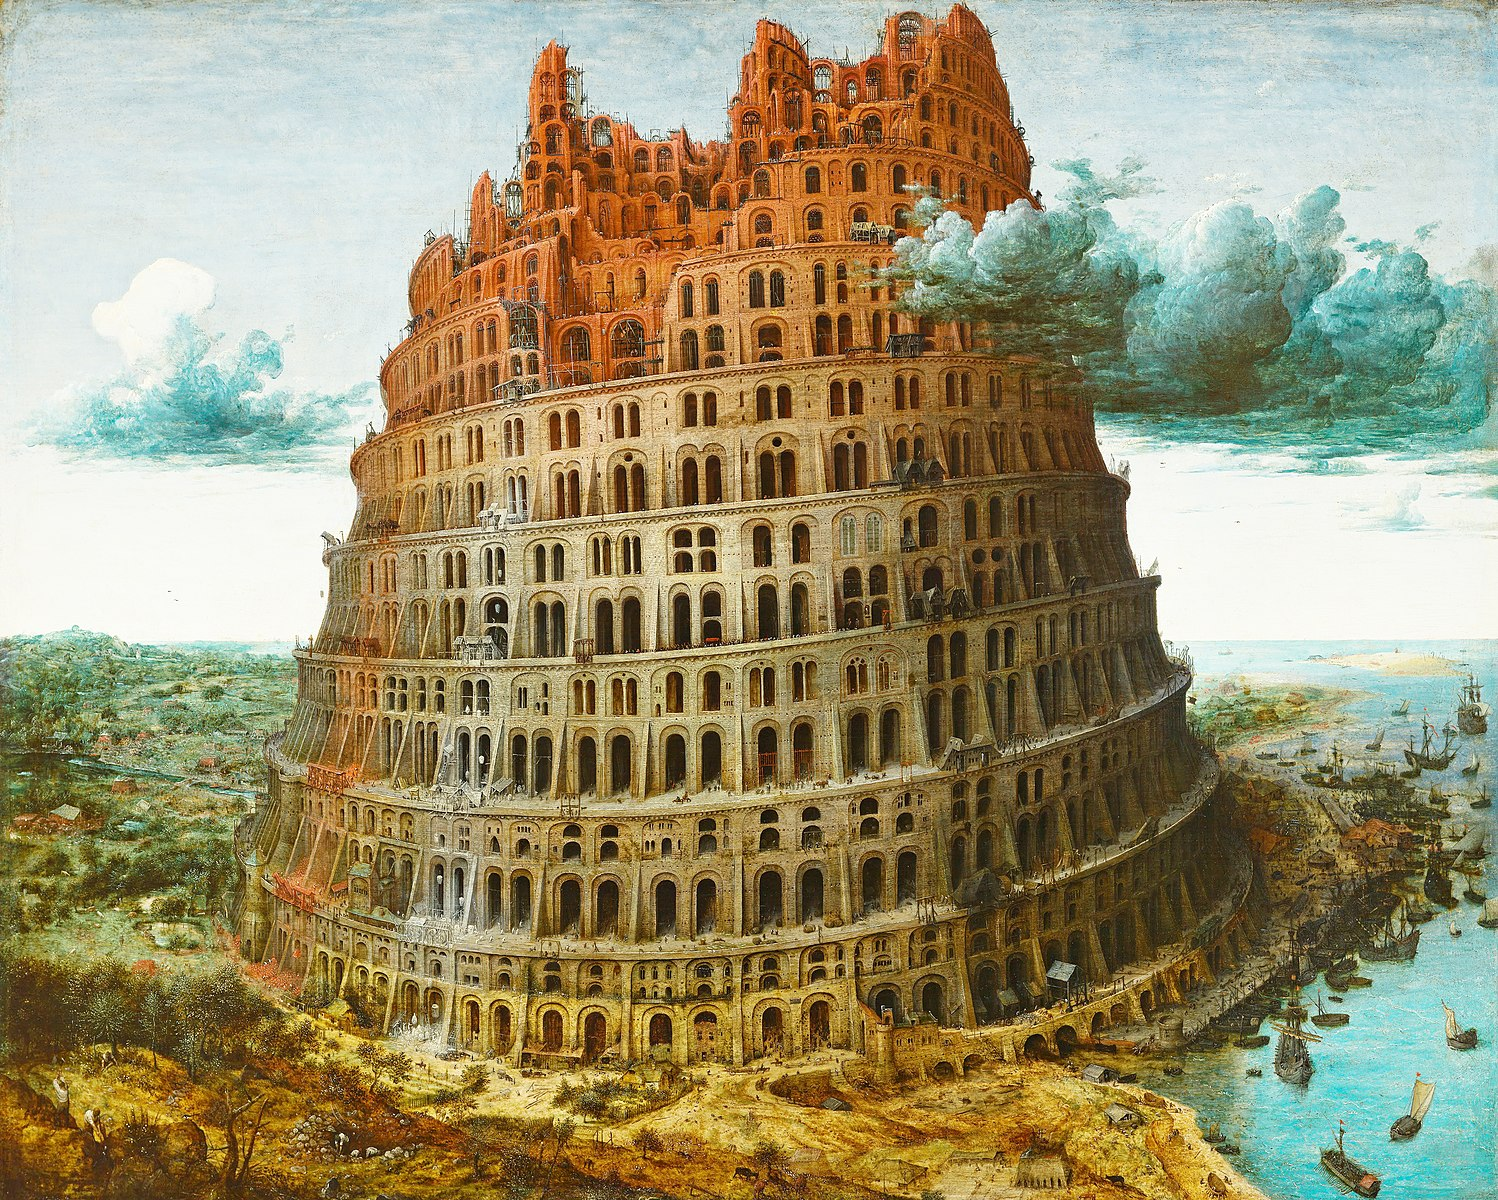 Pieter Bruegel's painting The Tower of Babel